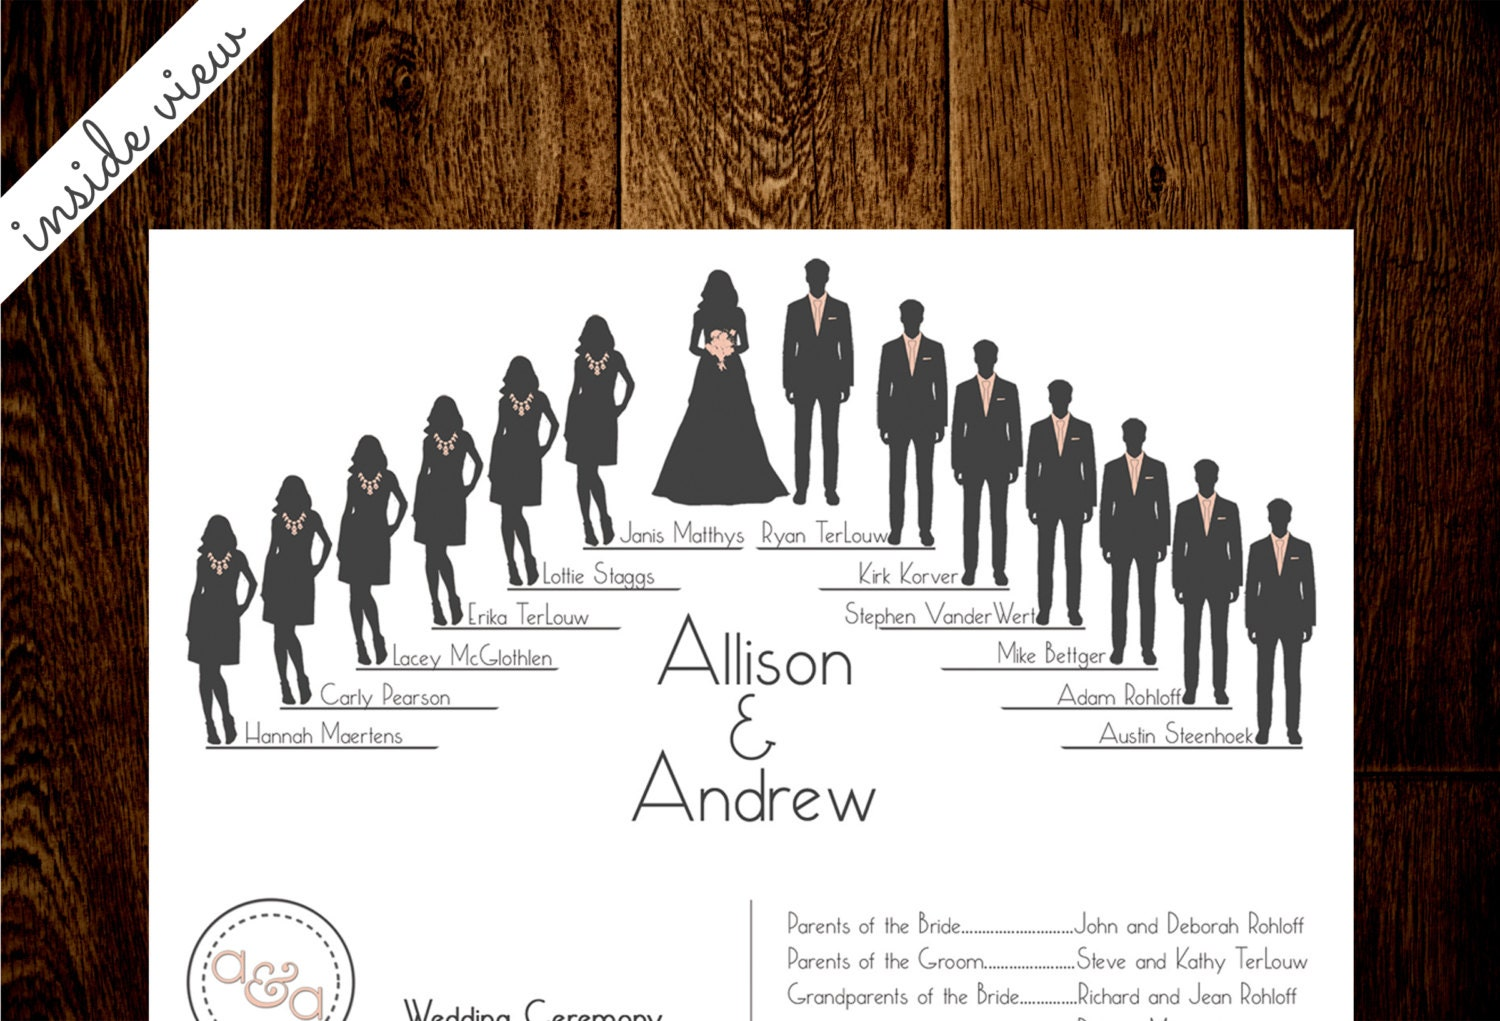 Wedding Party Silhouette Clip Art Program - More information